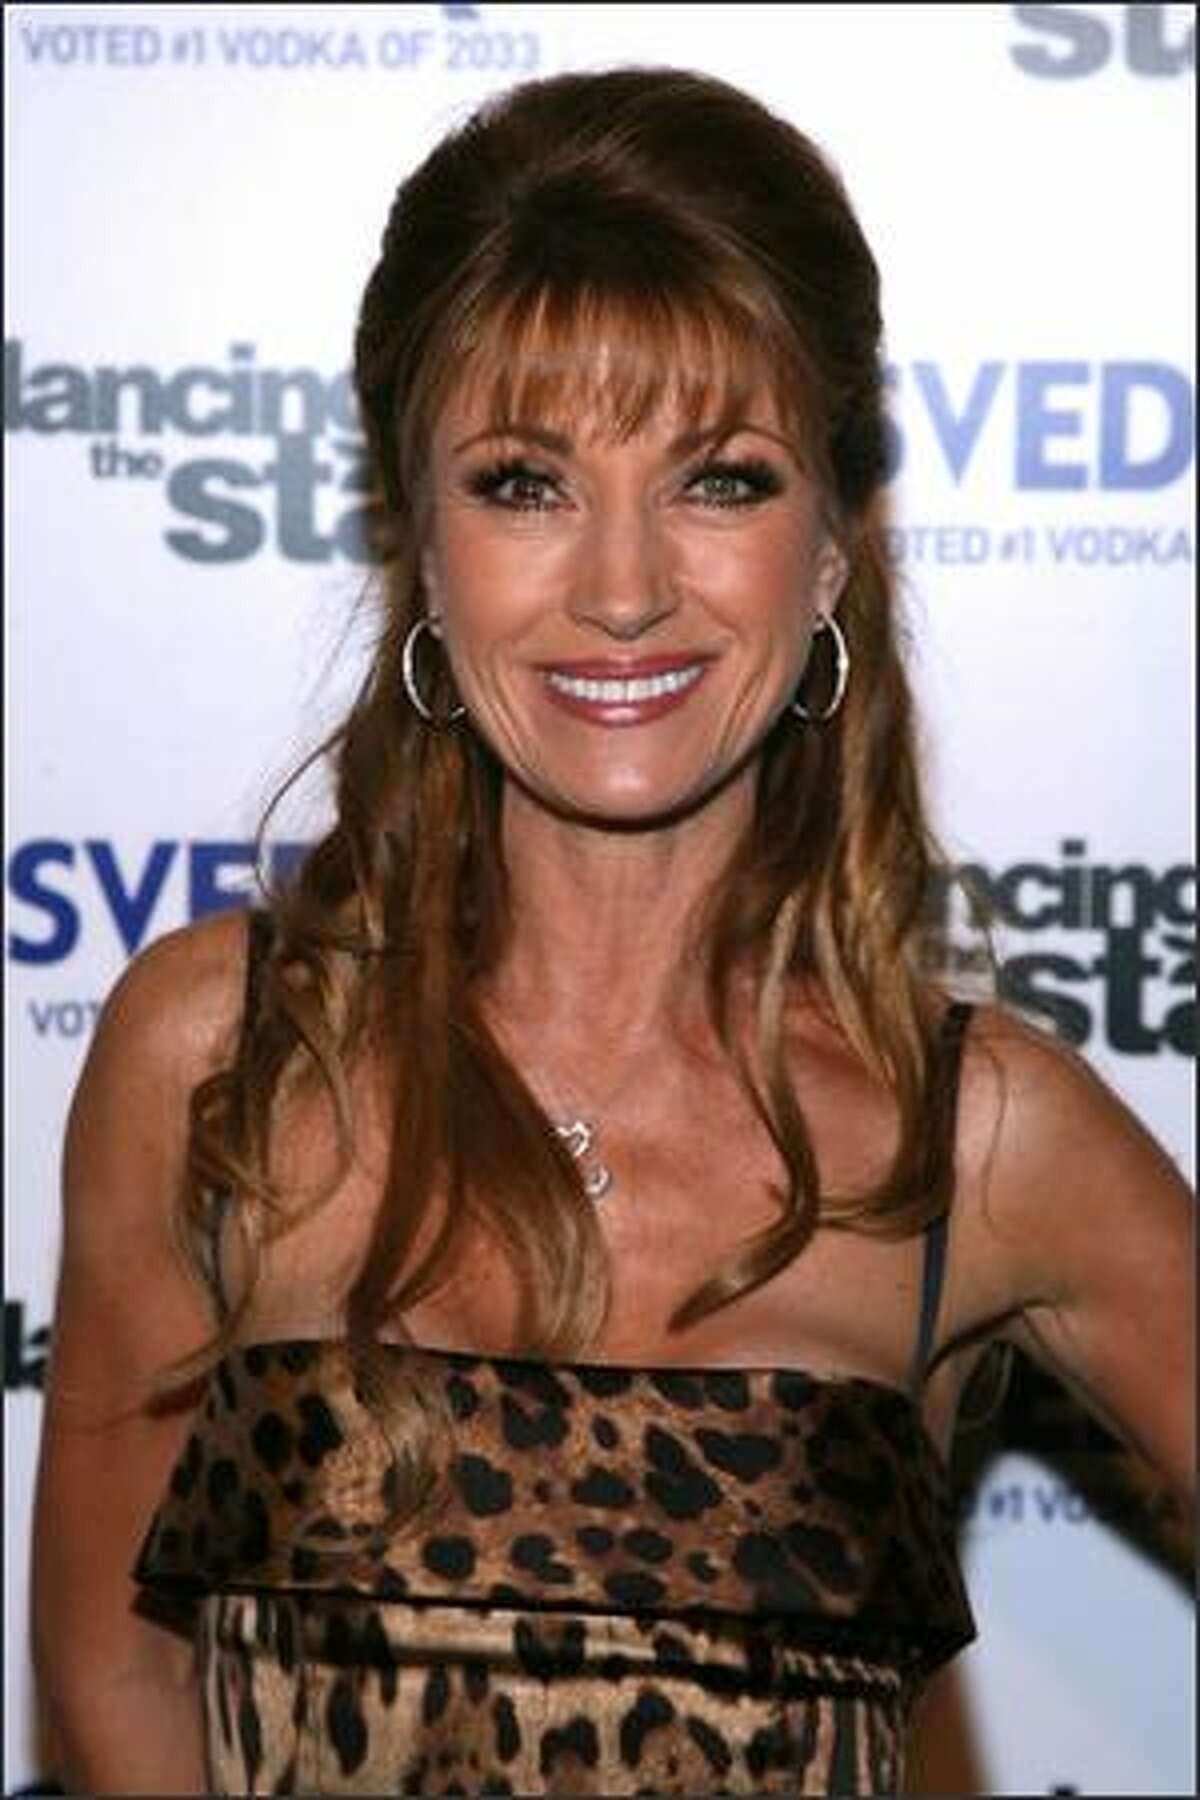 Actor Jane Seymour arrives at the 'Dancing With The Stars Finale' after party held on November 27, 2007 at The Day After club in Hollywood, Calif.